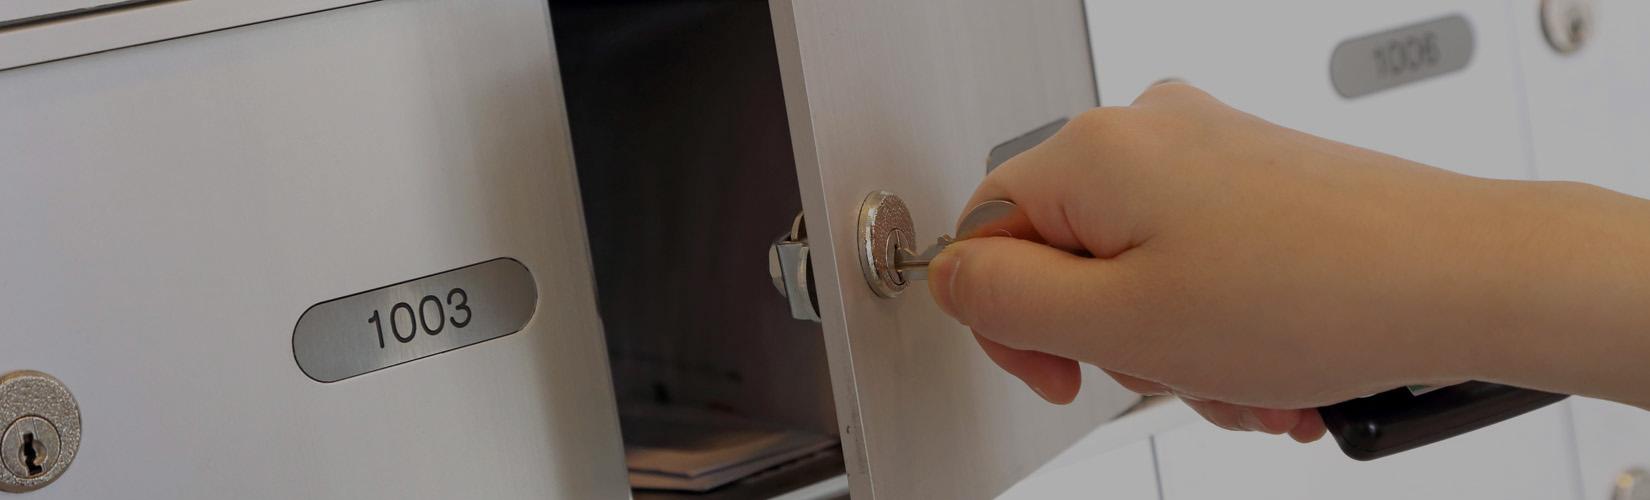 hand opening a mailbox with key